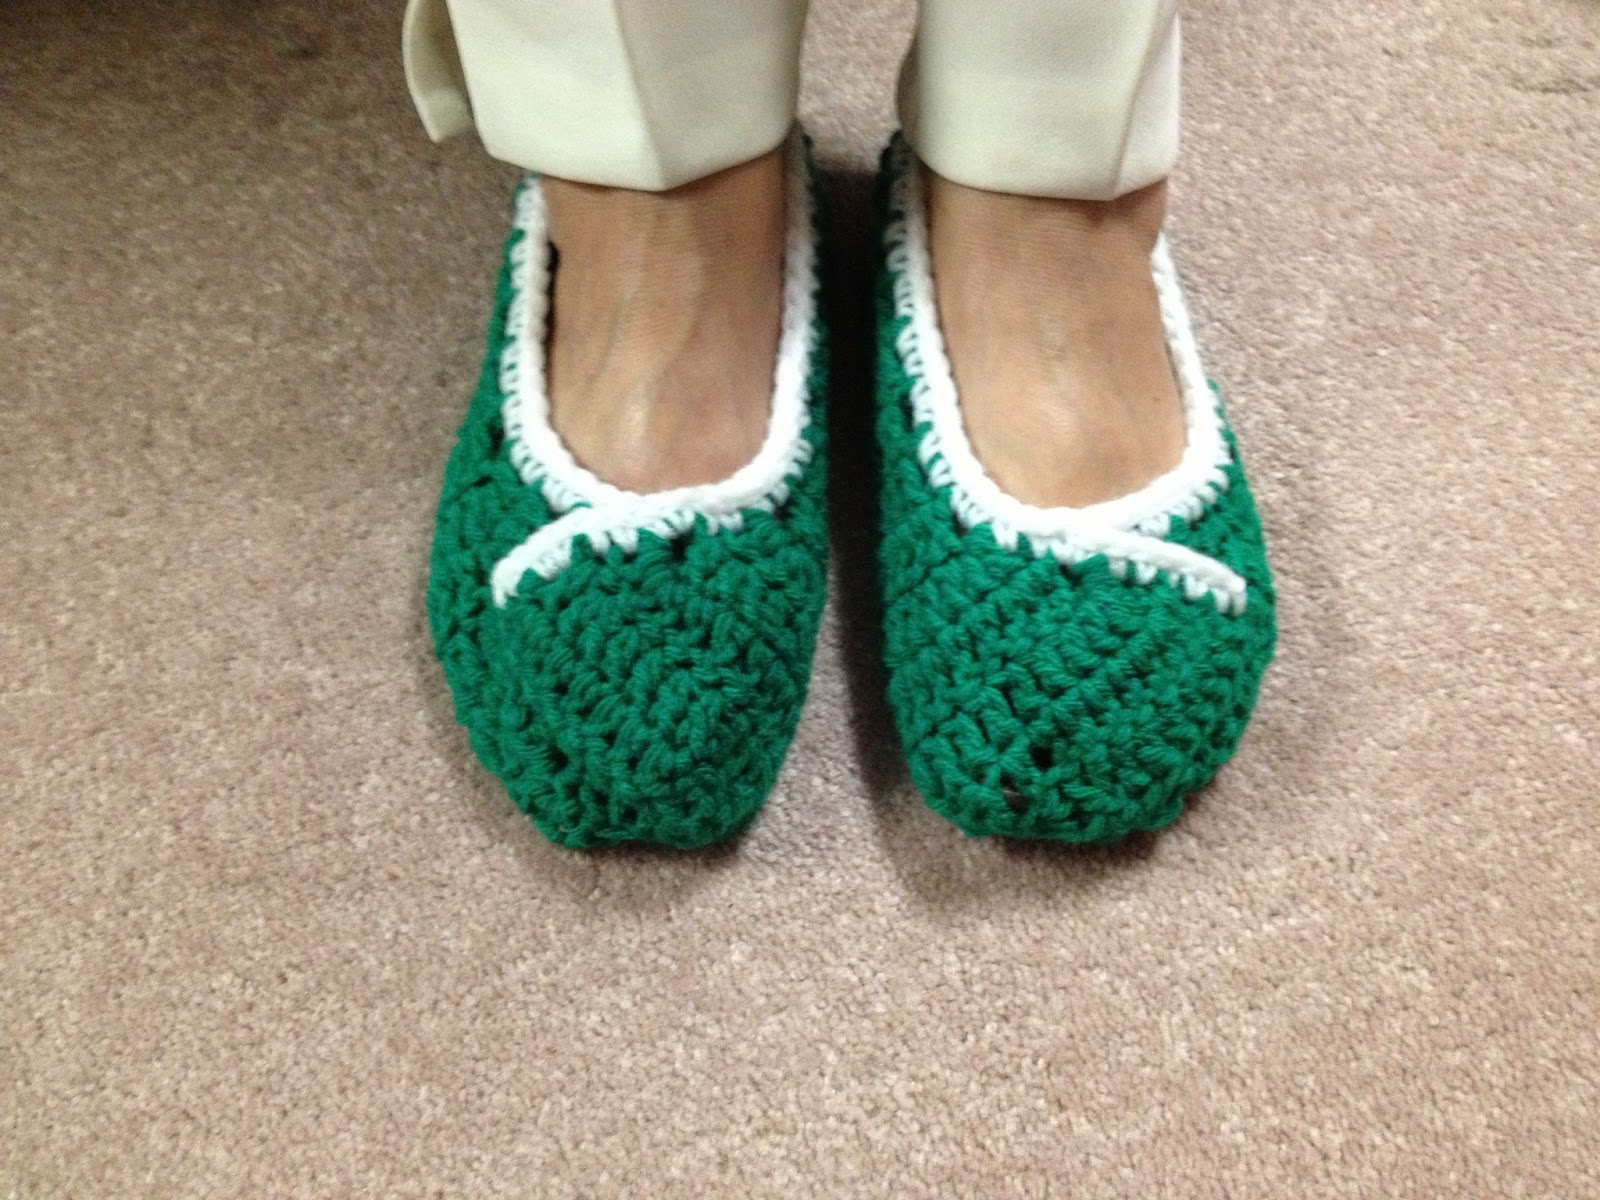 Stitch This Freud Xmas Gift Crafts Part 1 Slippers Great And Small